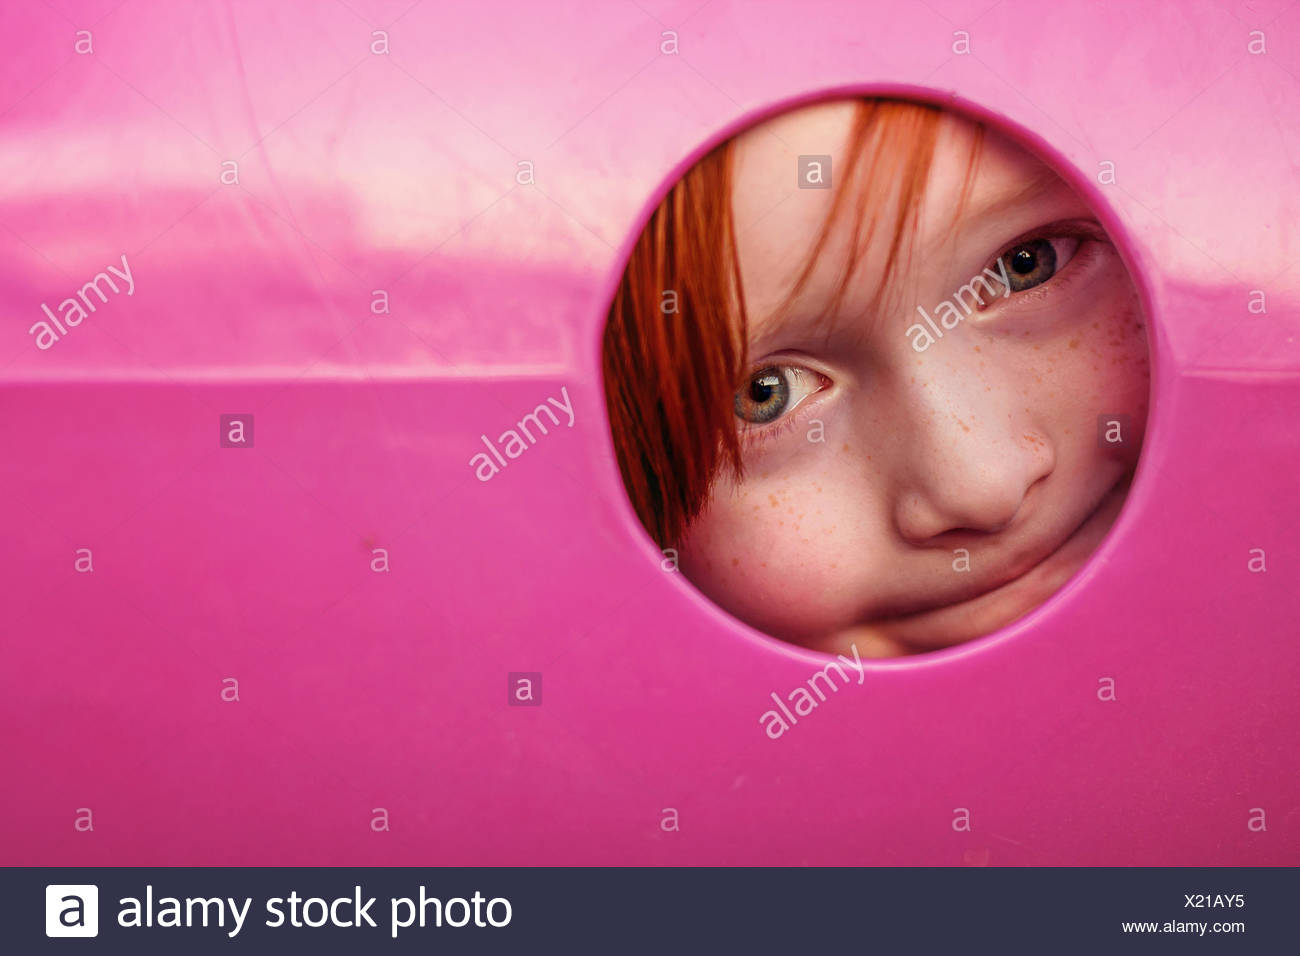 Young boy peeking through hole in playground tunnel - Stock Image